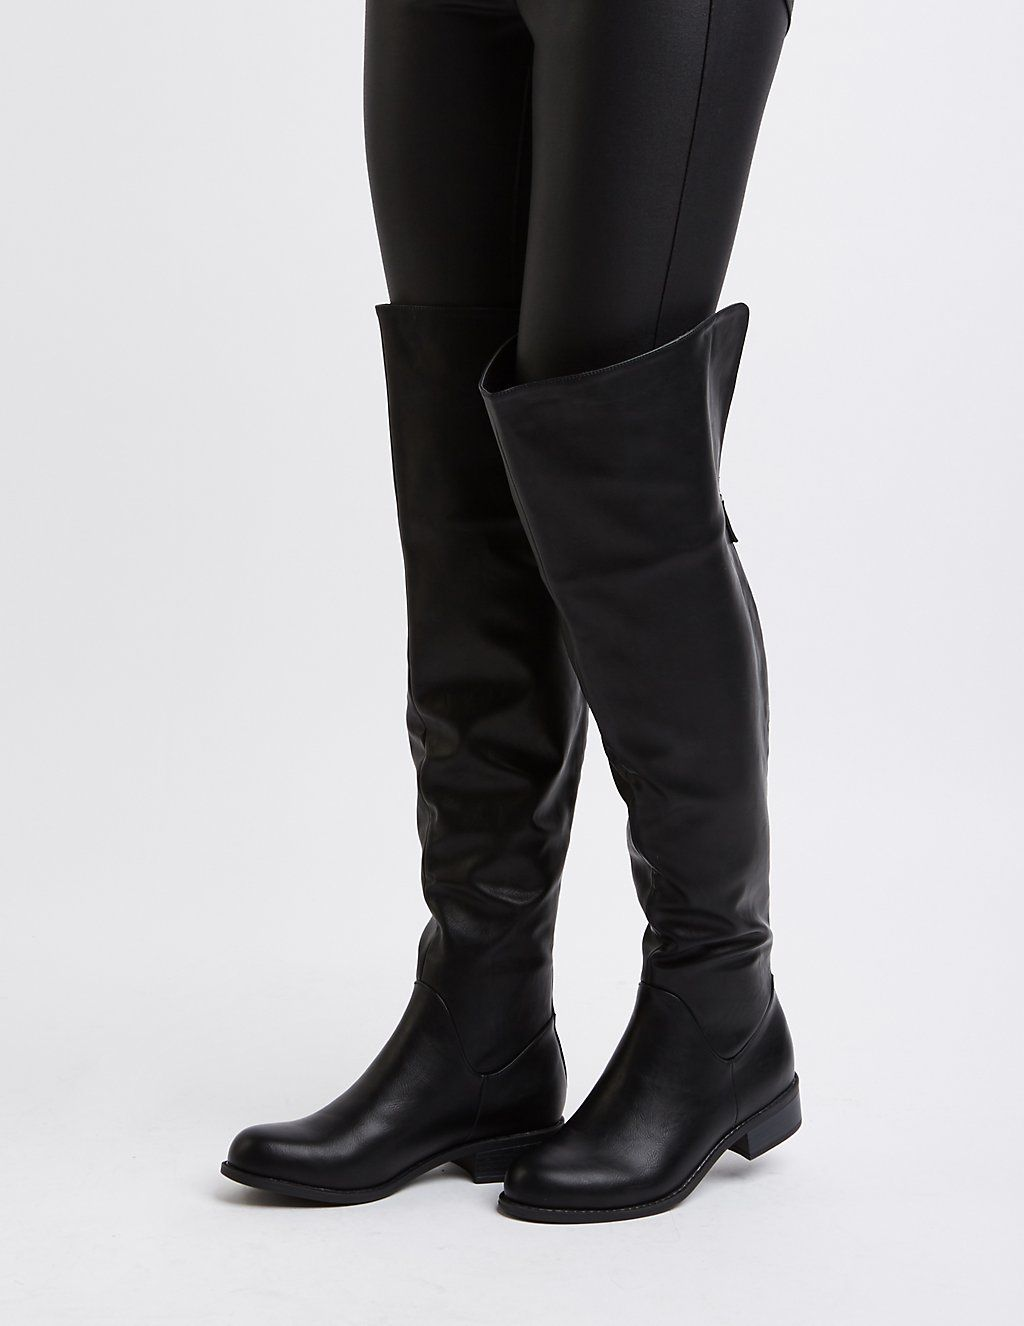 7a19c0248f16e Zipper-Trim Over-The-Knee Boots | Charlotte Russe | Historical ...